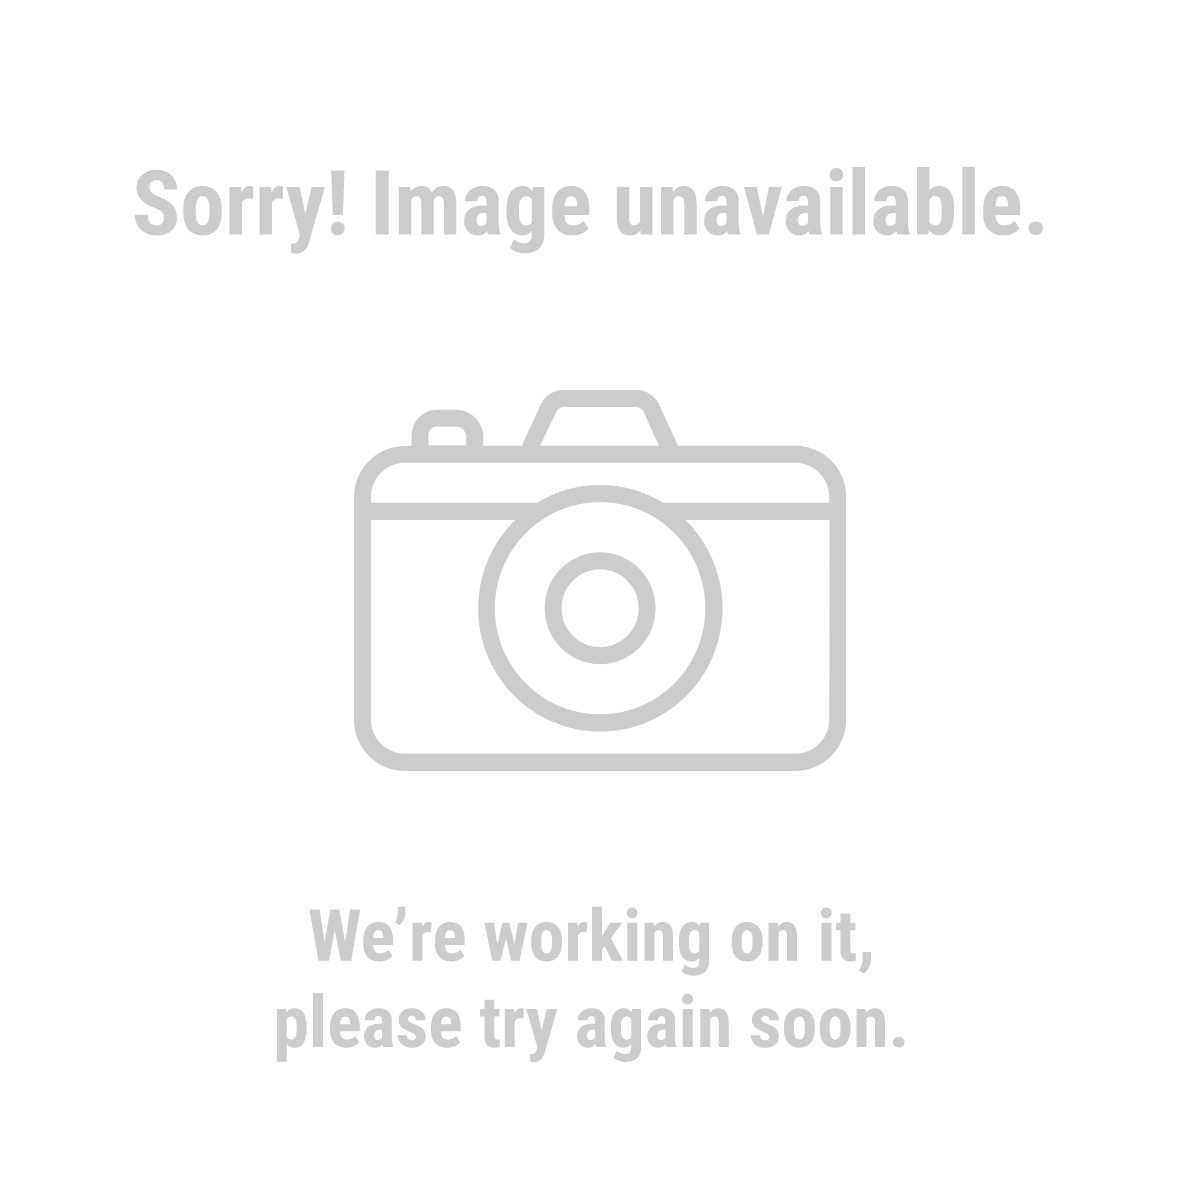 harbor freight hammer drill. sds variable speed pro rotary hammer kit harbor freight drill -